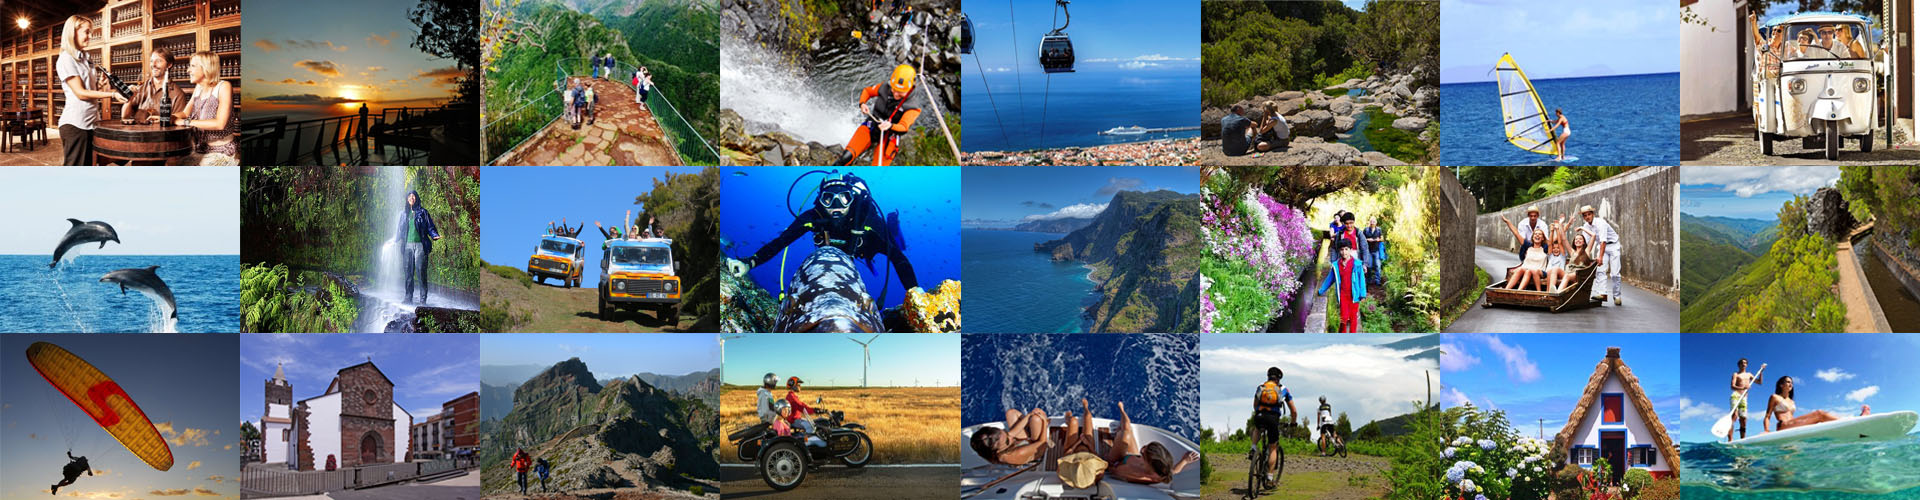 Madeira Outdoor Activities - 10 Reasons to Visit Madeira Island